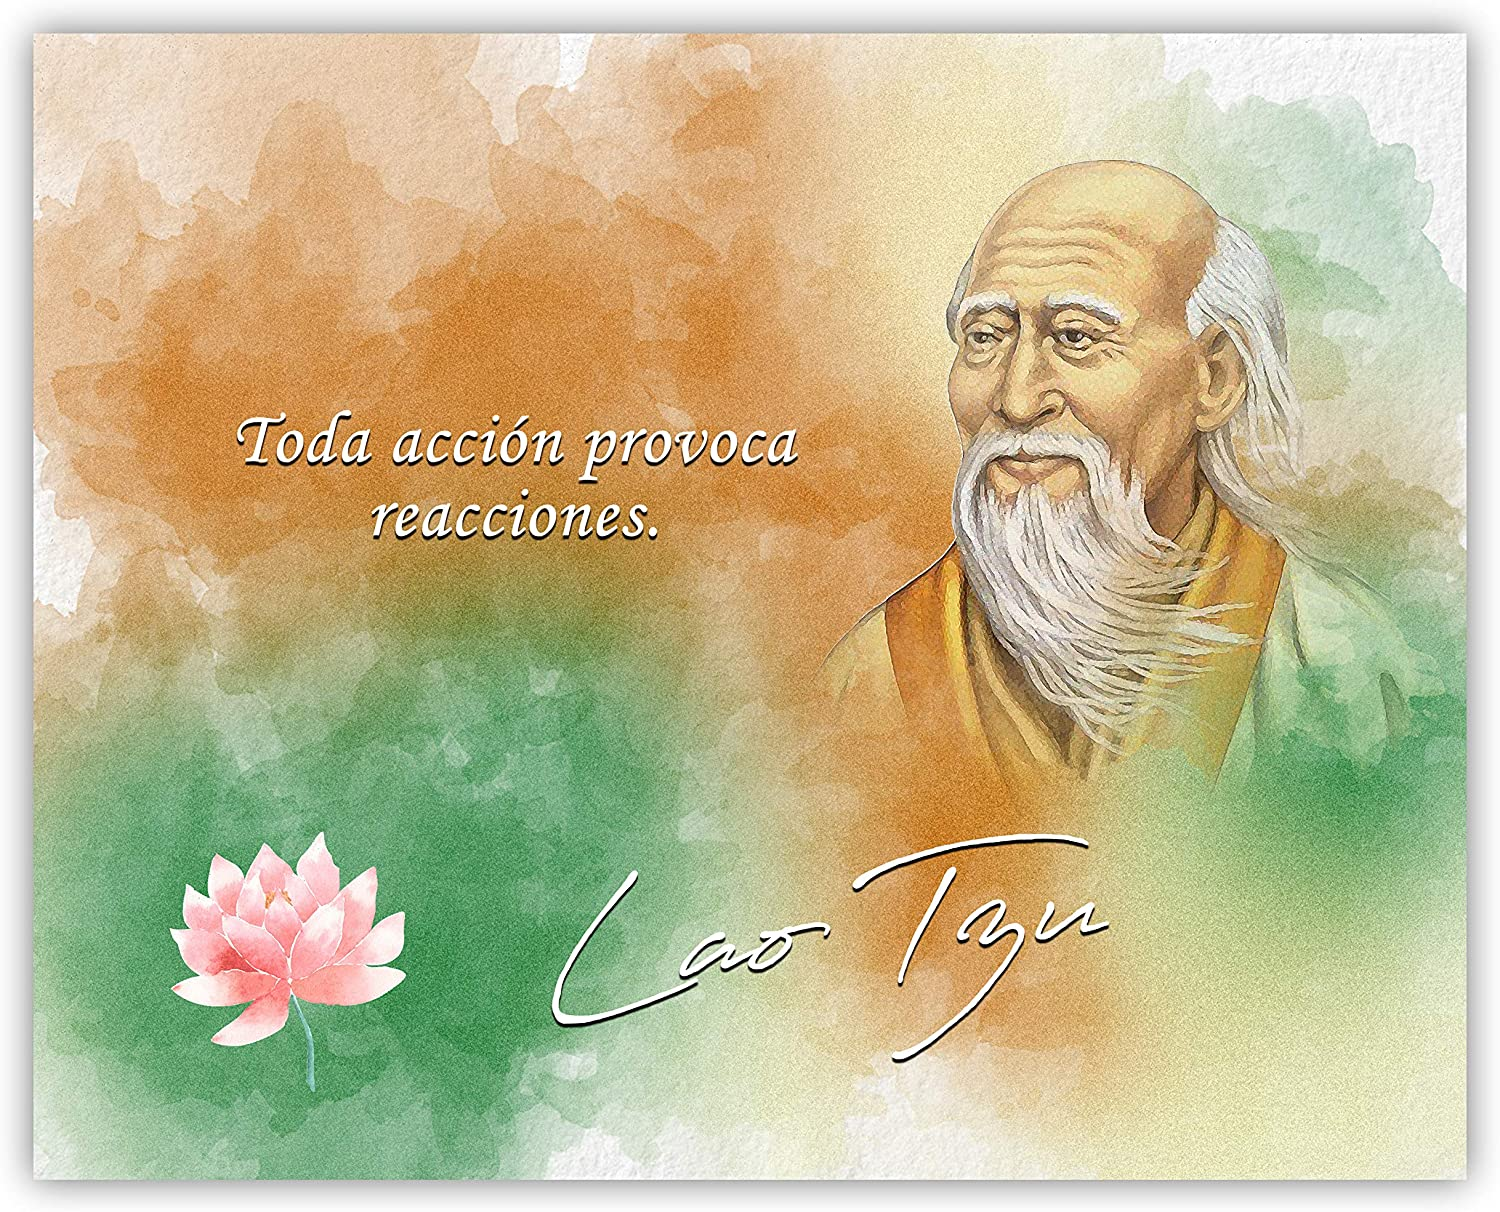 Toda Acción Provoca Reacciones Lao Tzu Inspirational Quote - 8 x 10 Unframed Print - Great Gift for Spanish Teachers and Spanish Speaking Friends - Wall Art for Home Decor